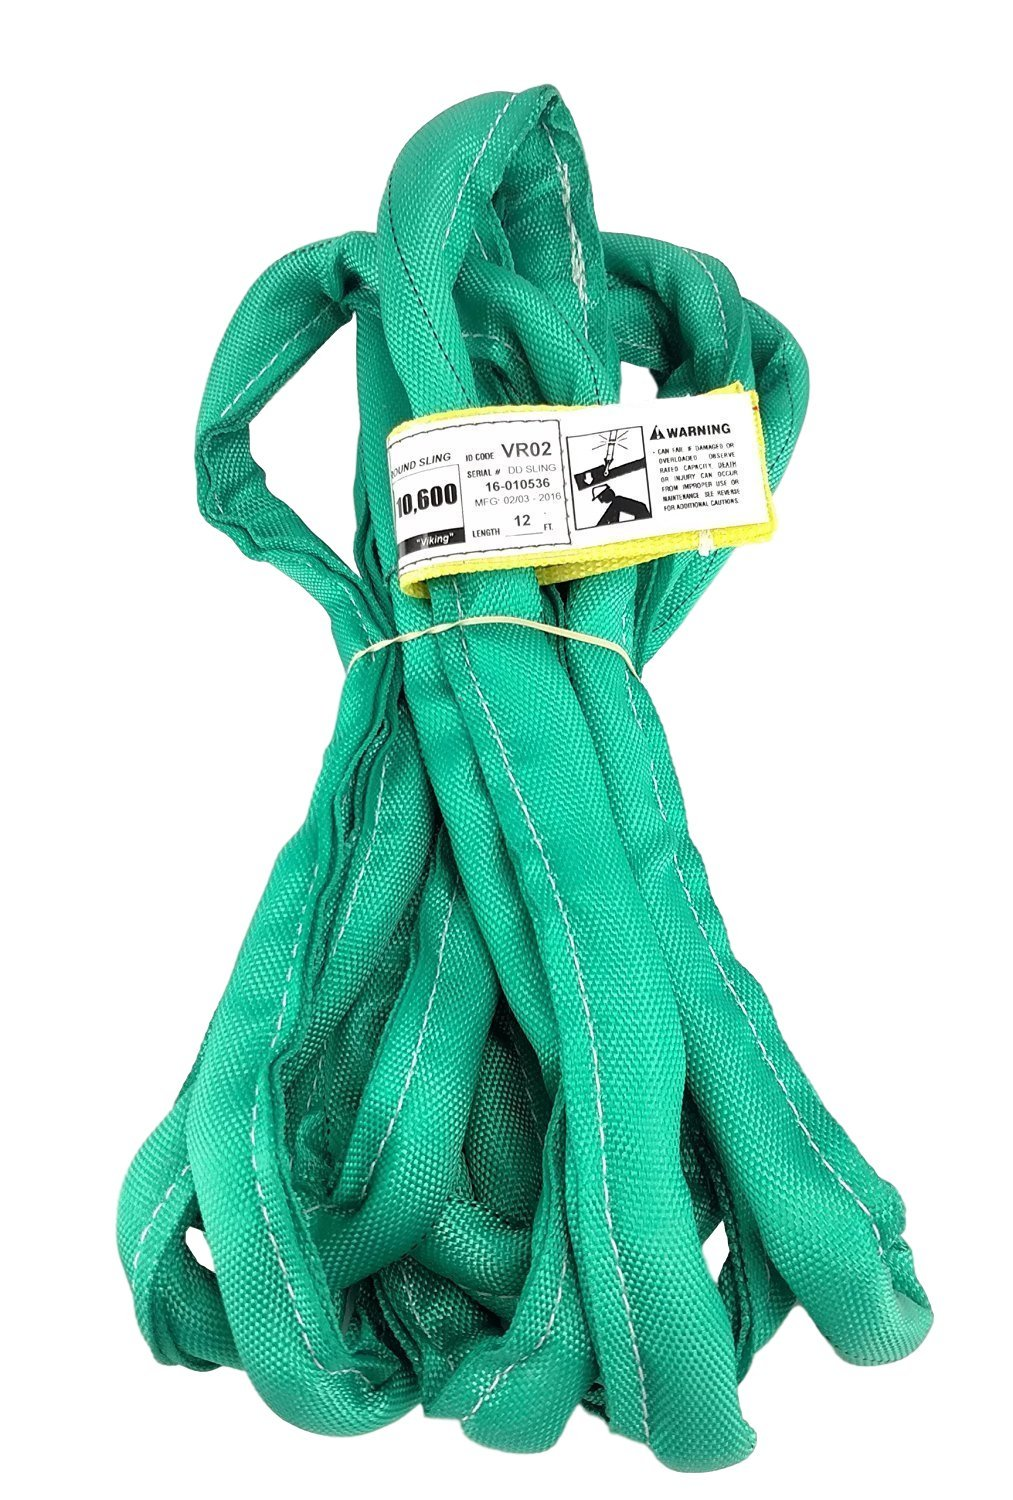 USA Made VR2 X 12' Green Slings 4'-30' Lengths In Listing, DOUBLE PLY COVER Endless Round Poly Lifting Slings, 5,300 lbs Vertical, 4,240 lbs Choker, 10,600 lbs Basket (USA Poly) (12 FT)